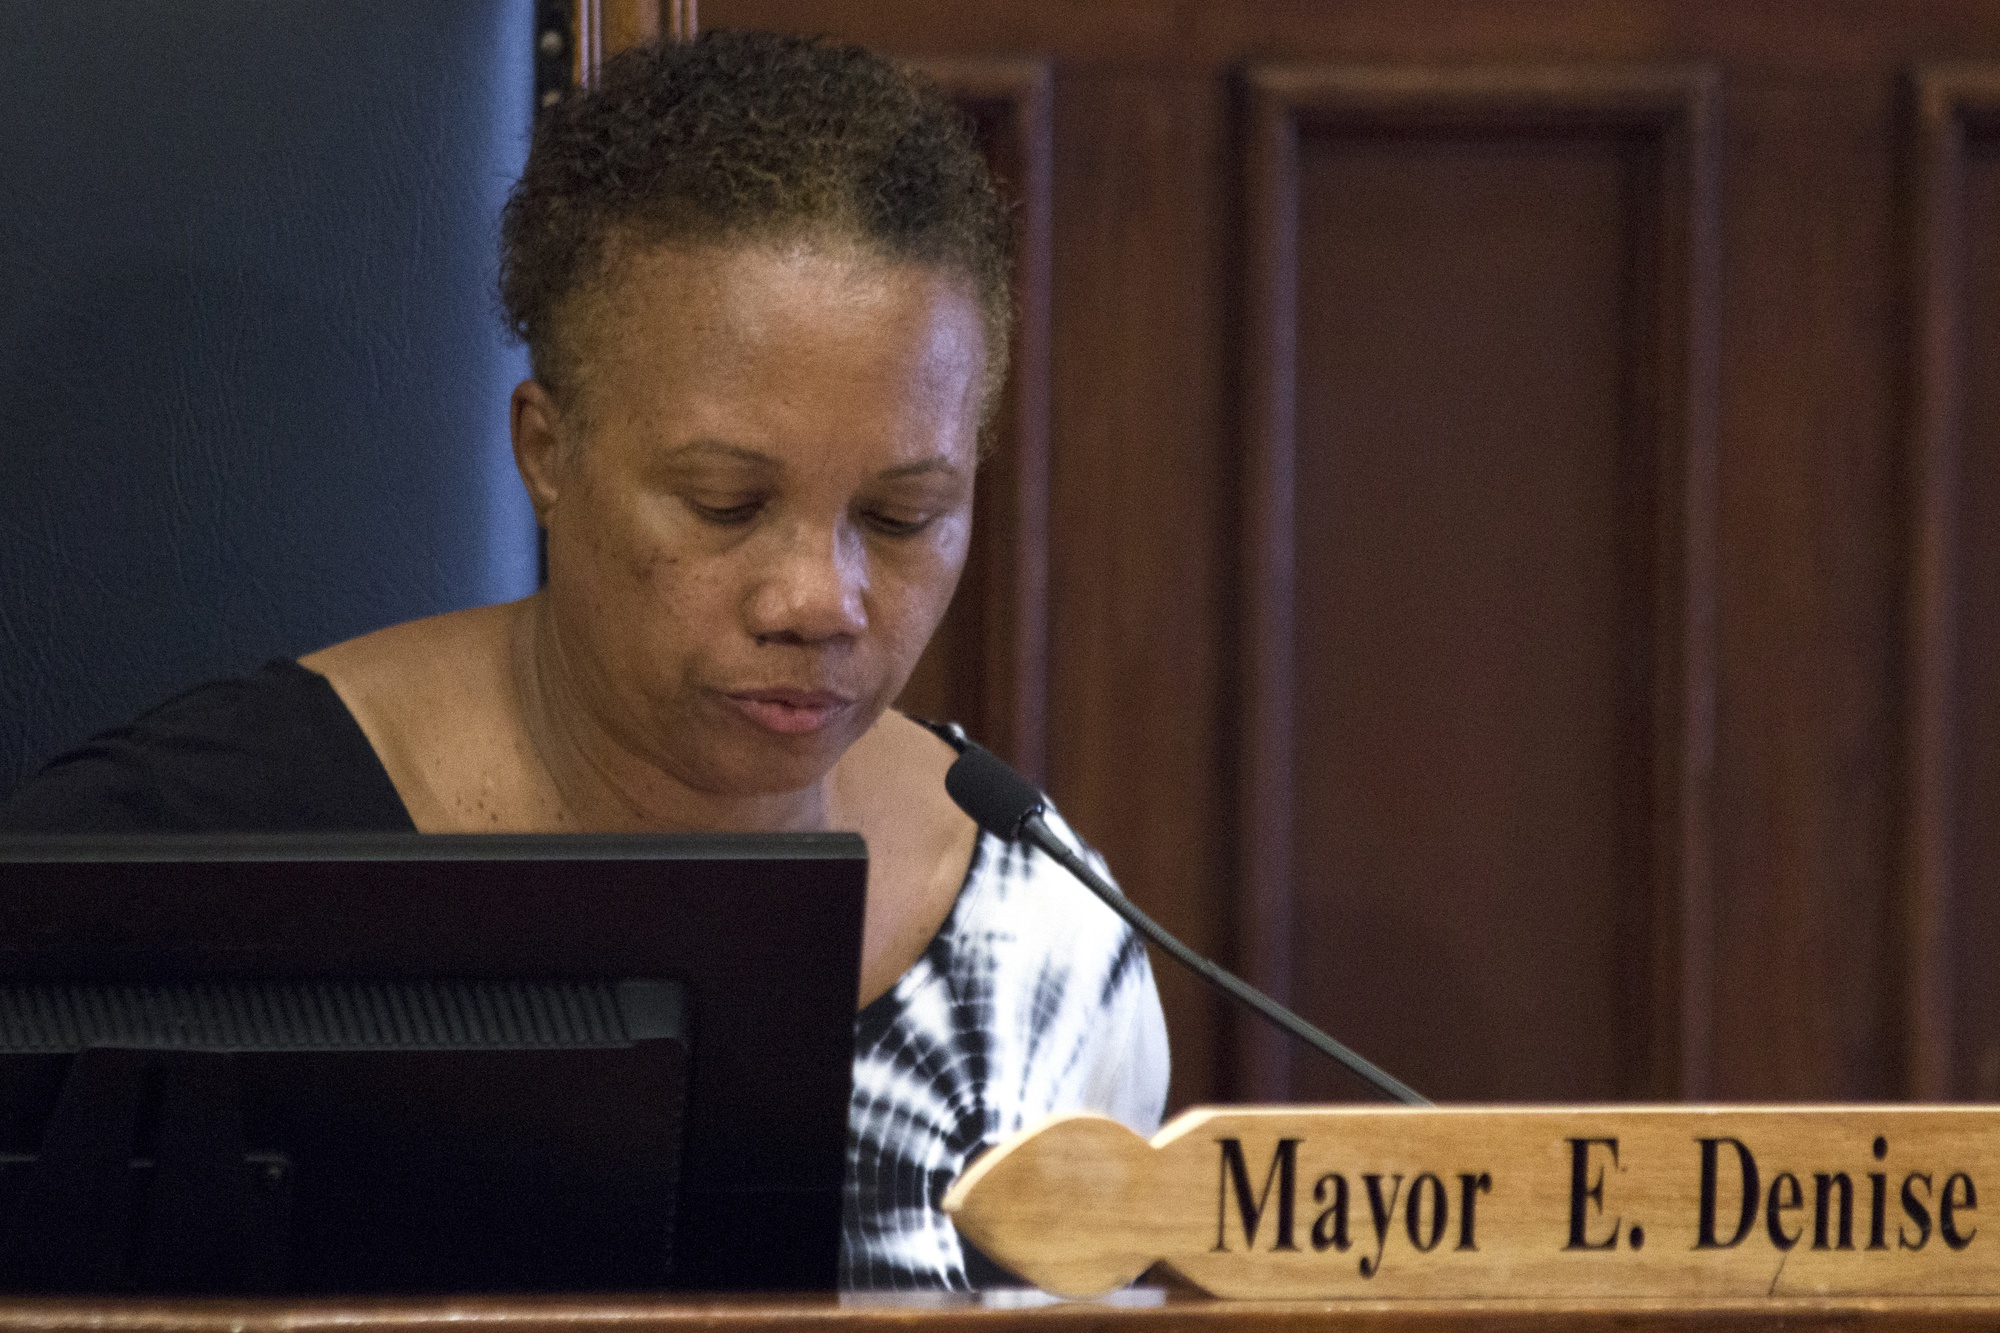 Cambridge Mayor E. Denise Simmons moderates Monday's city council meeting at City Hall. The Cambridge City Council became the first in the Commonwealth of Massachusetts to pass a resolution supporting medical aid in dying.